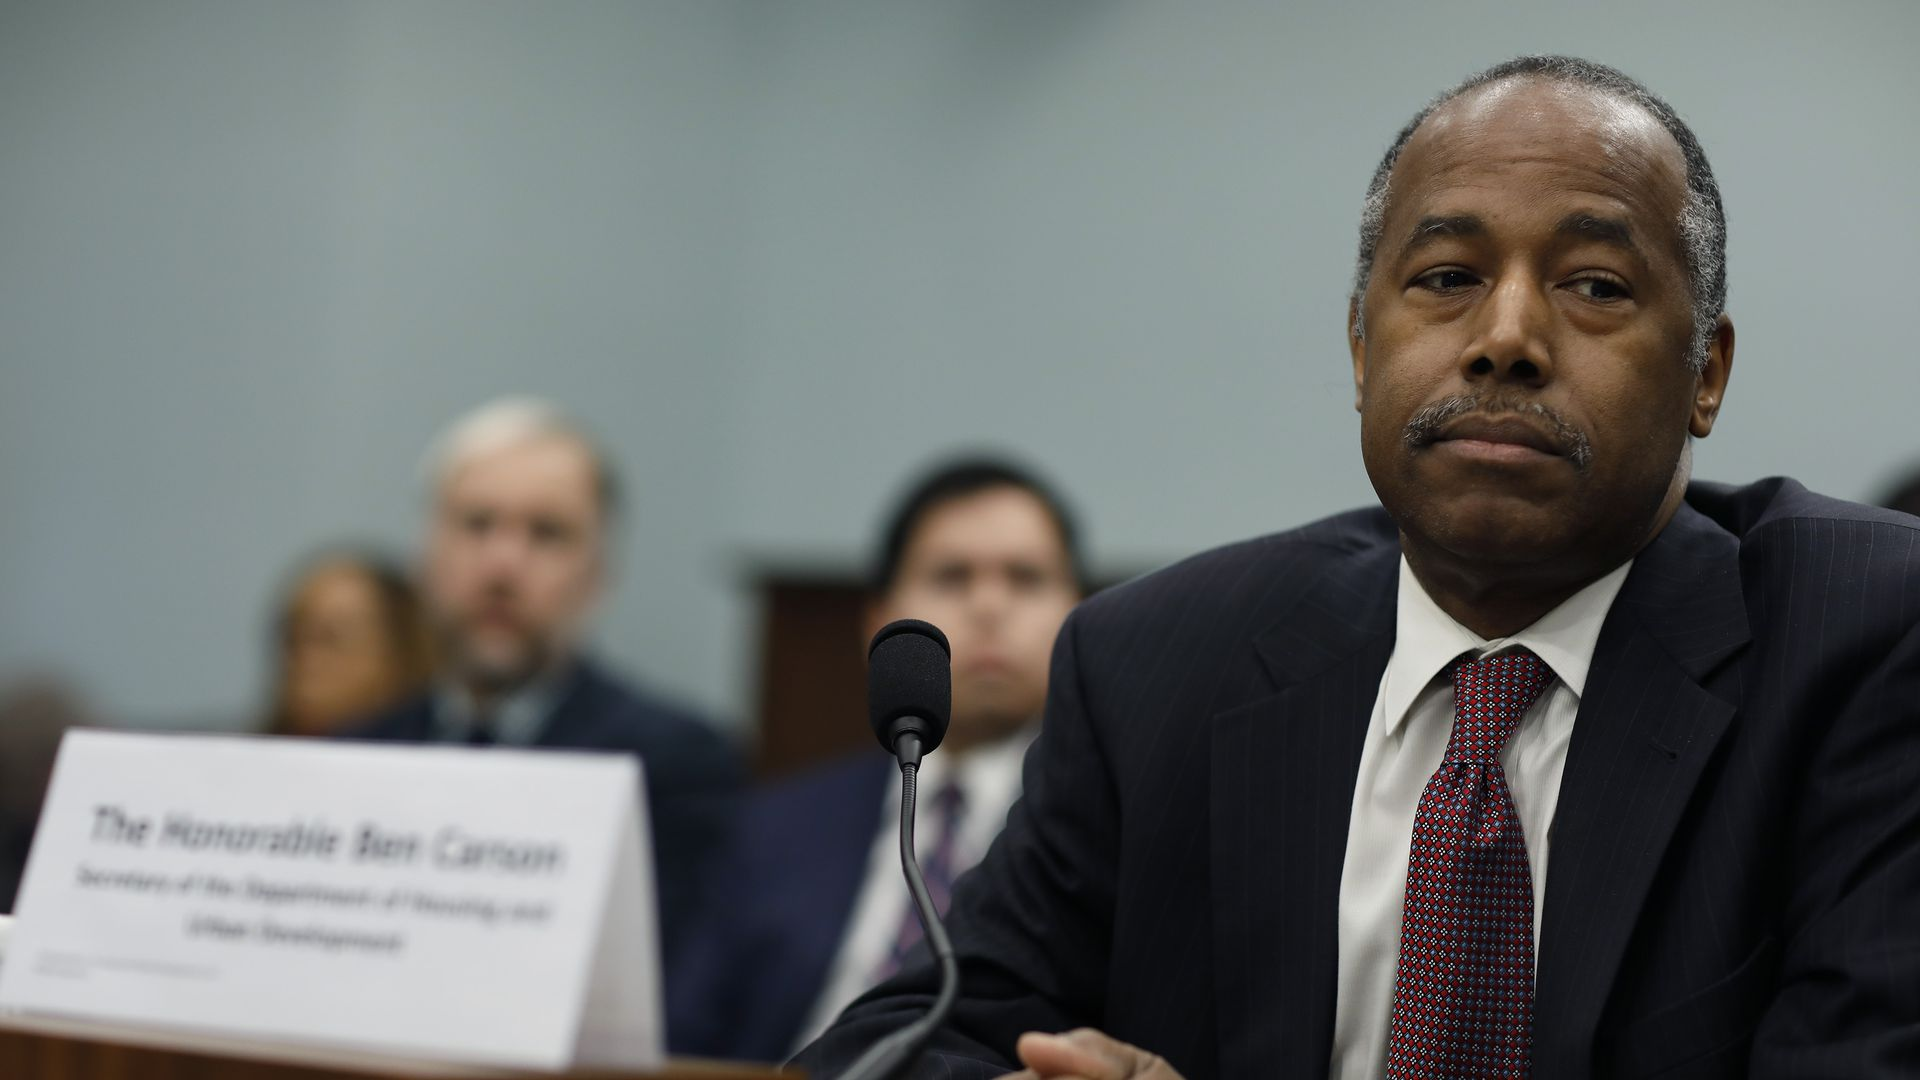 Ben Carson looking sad